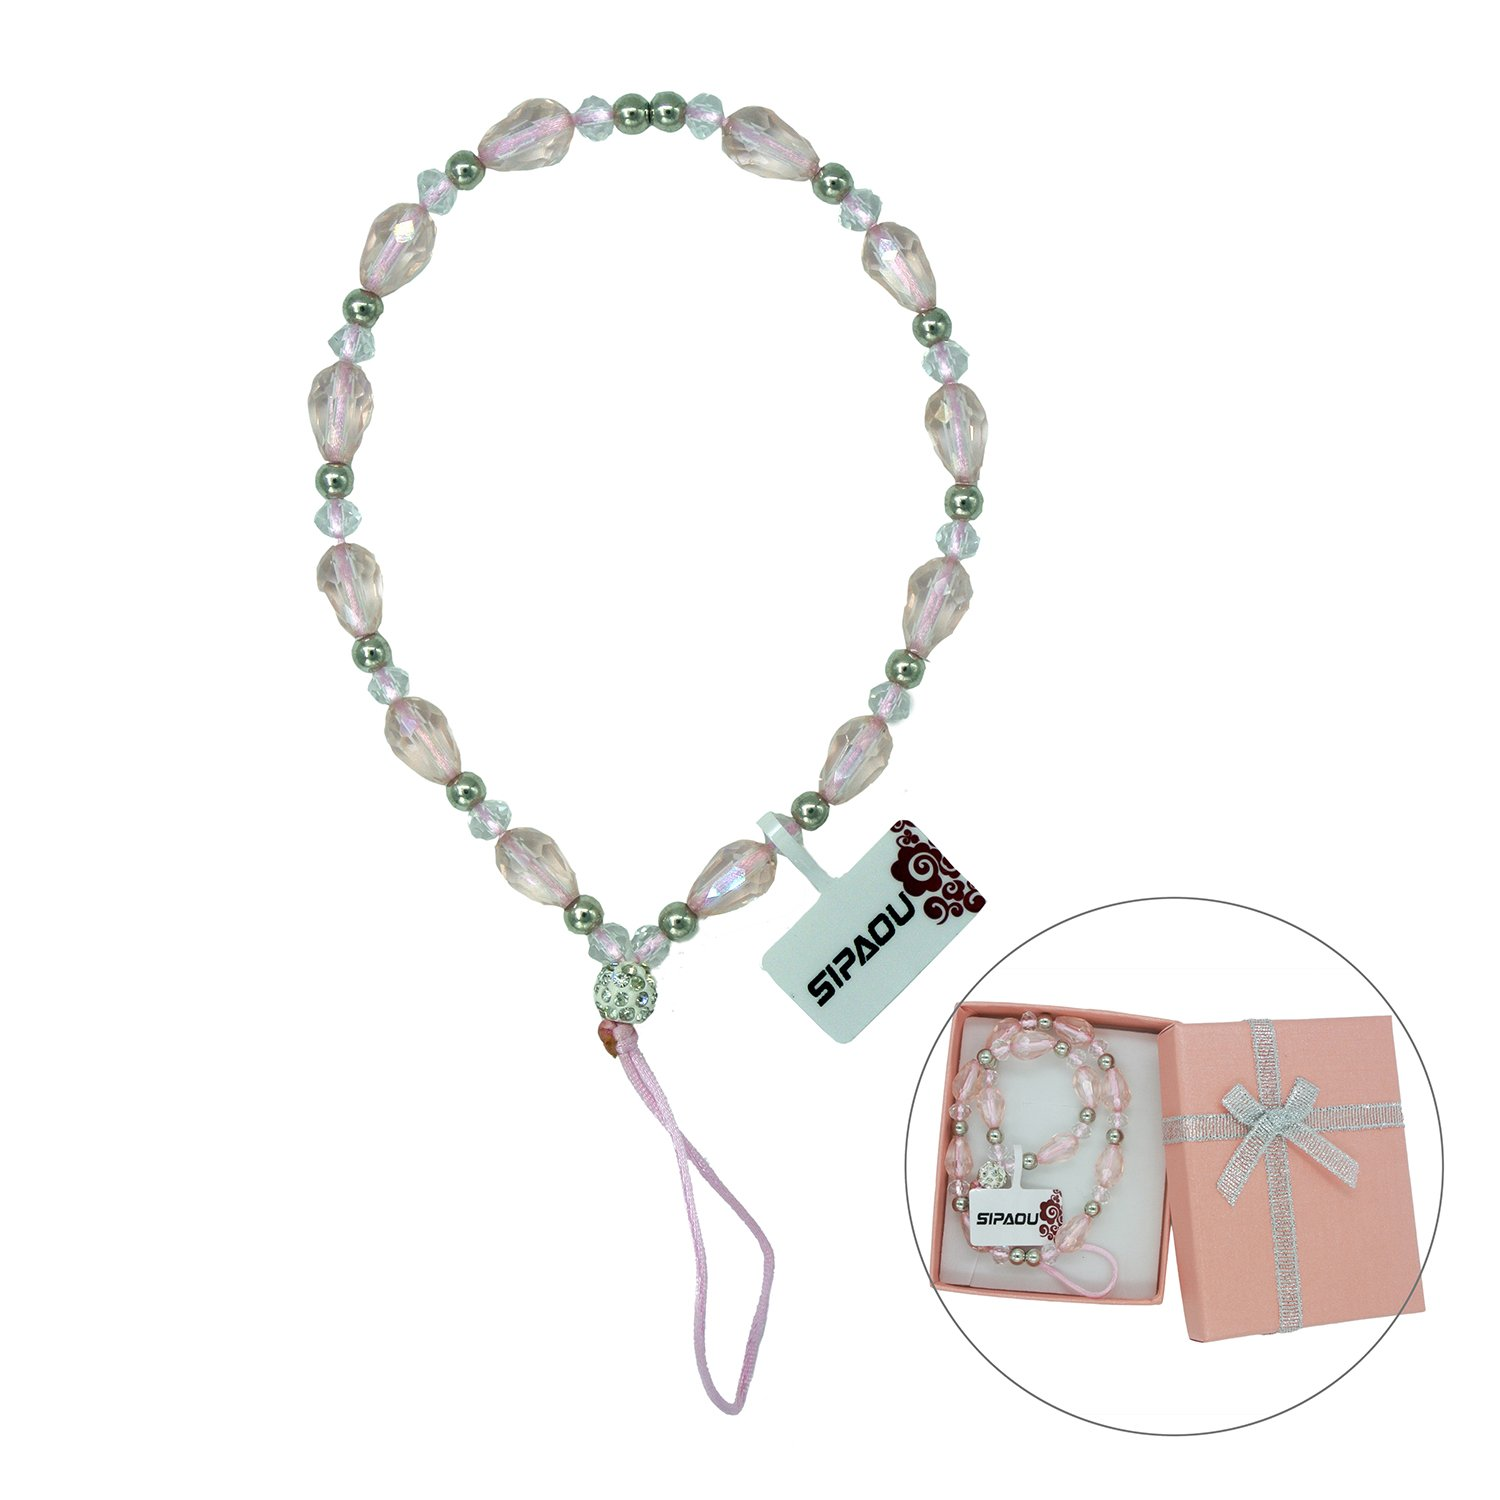 SIPAOU Women's Fashion Cell Phone Lanyard Strap, 7.8 Inch Bling Crystal Beads Hand Wrist Lanyard Strap String for Cell Phone Purse Camera MP3 MP4 iPod PSP Keychain, Gift Box Included(Short Pink) by SIPAOU (Image #1)